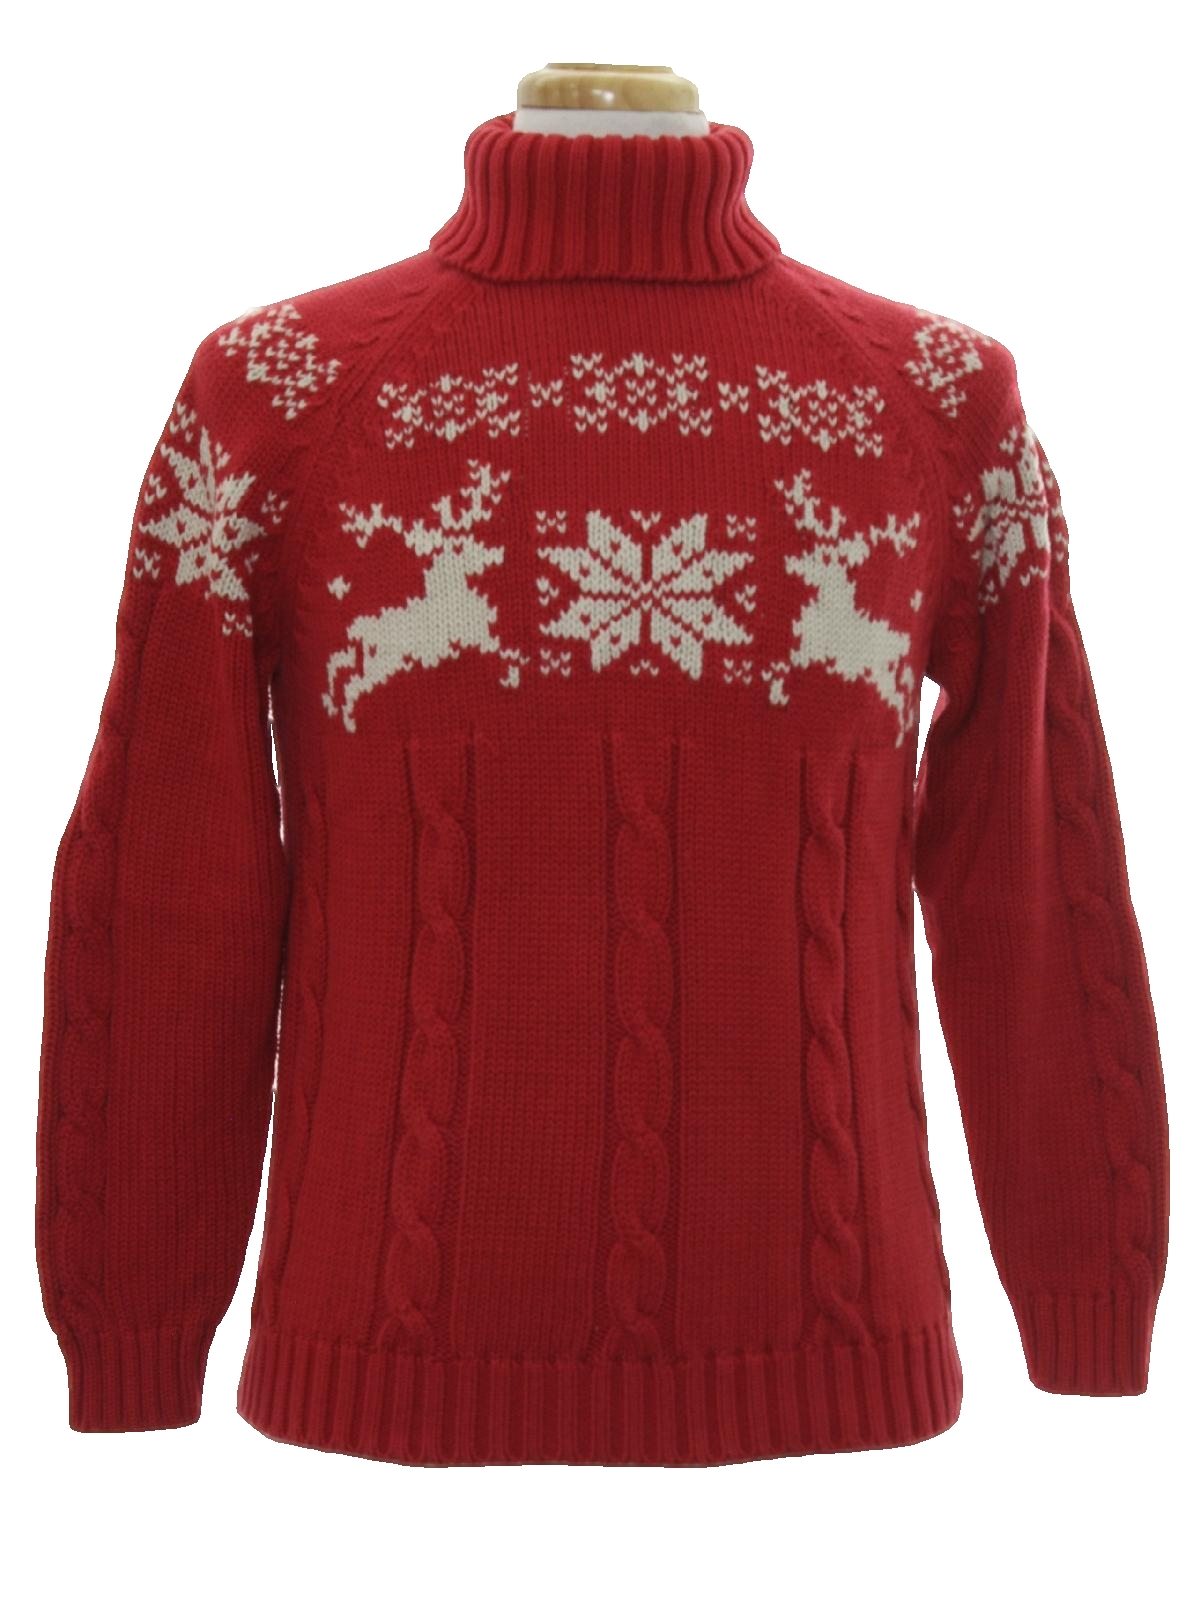 Eighties Vintage Sweater: 80s vintage -Lands End- Womens red with ...